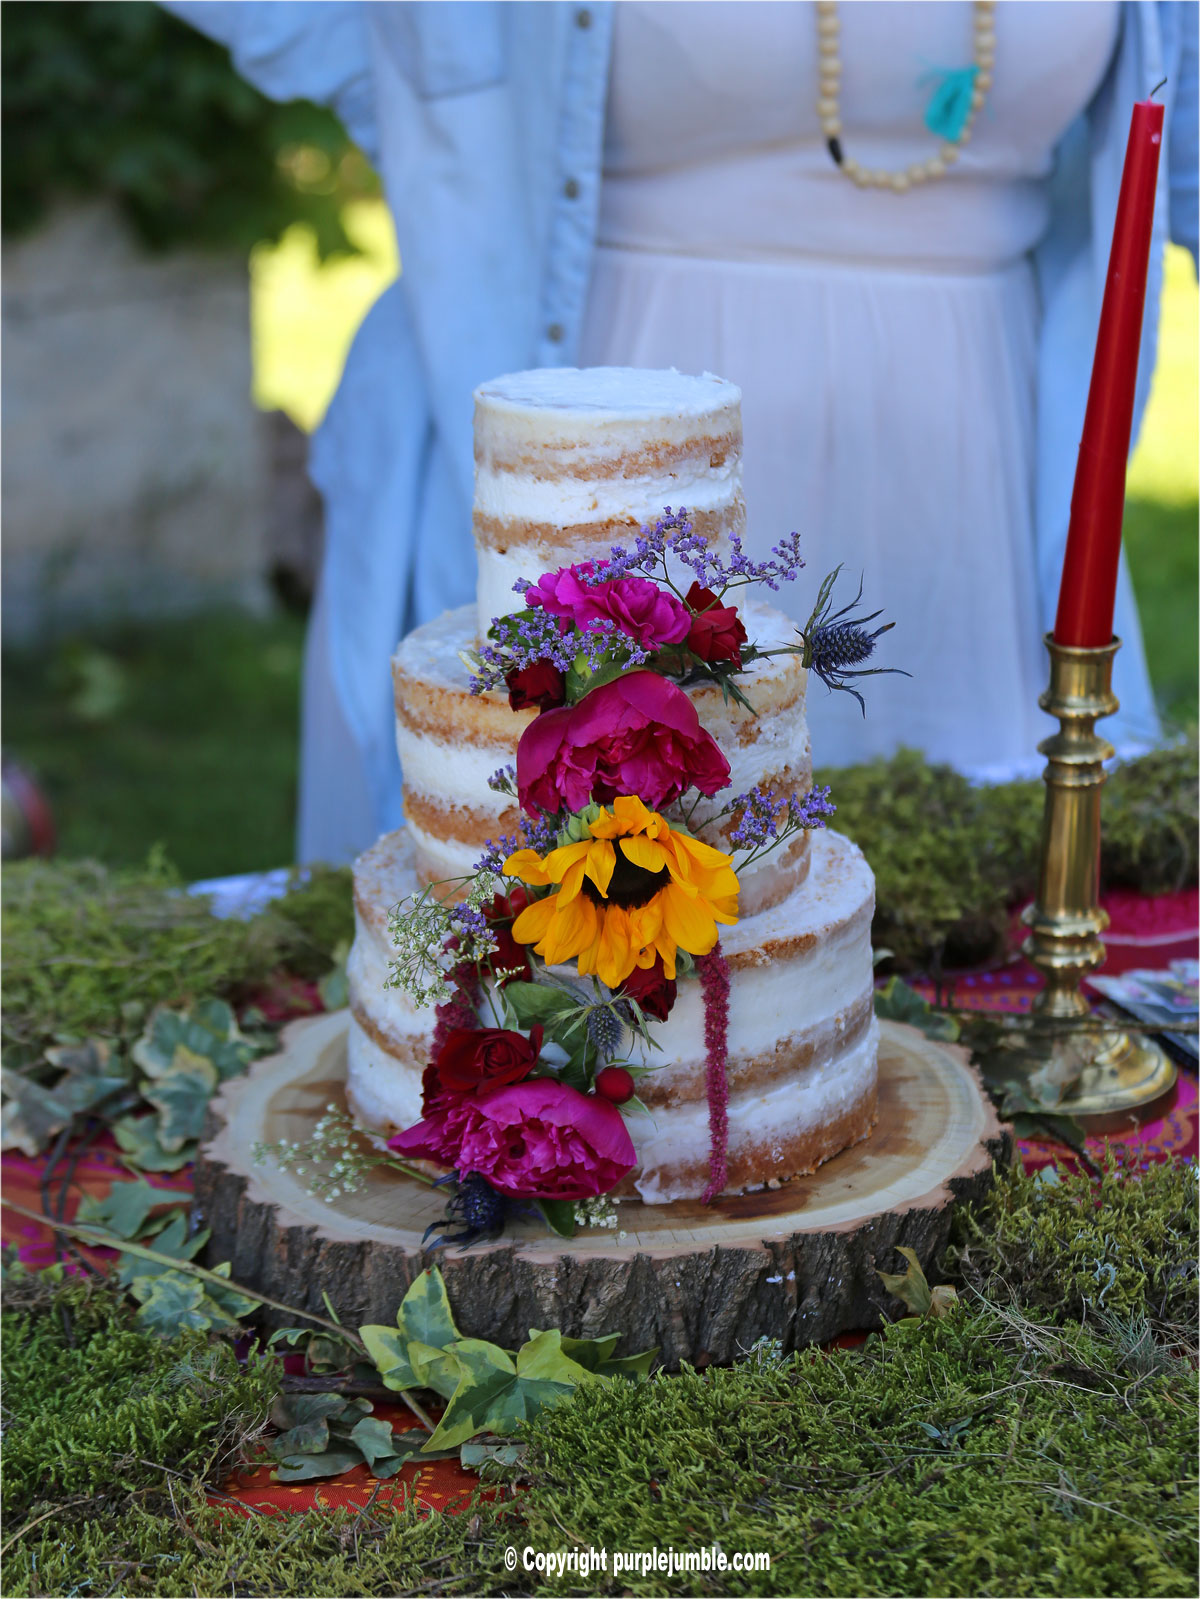 south vintage festival gateau mariage Louis Patissier